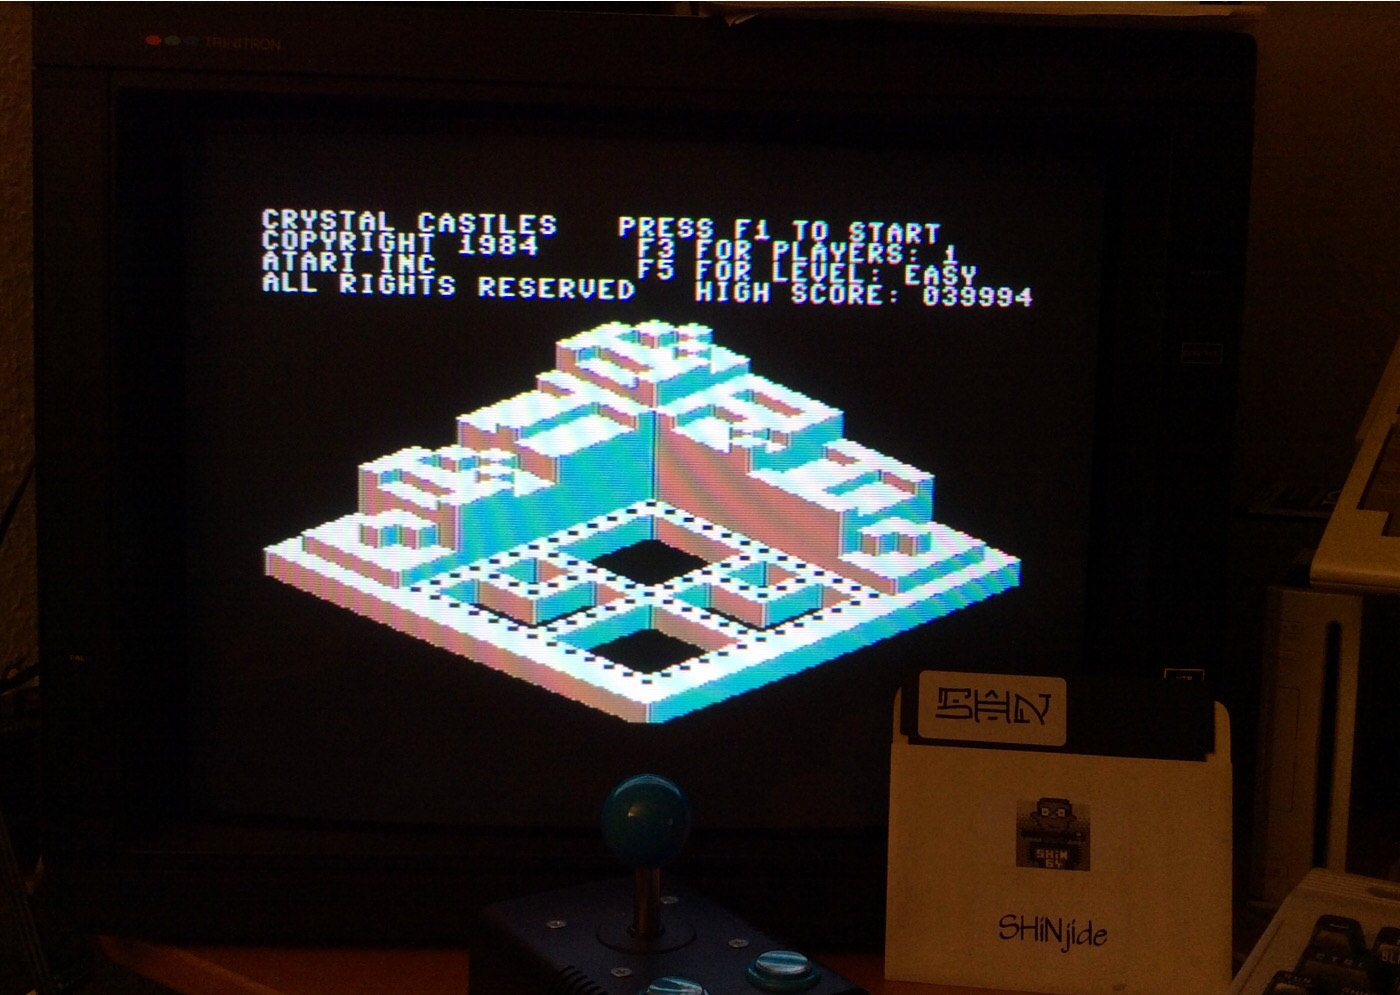 SHiNjide: Crystal Castles [US Gold/Atari] [Easy] (Commodore 64) 39,994 points on 2014-12-21 15:42:23